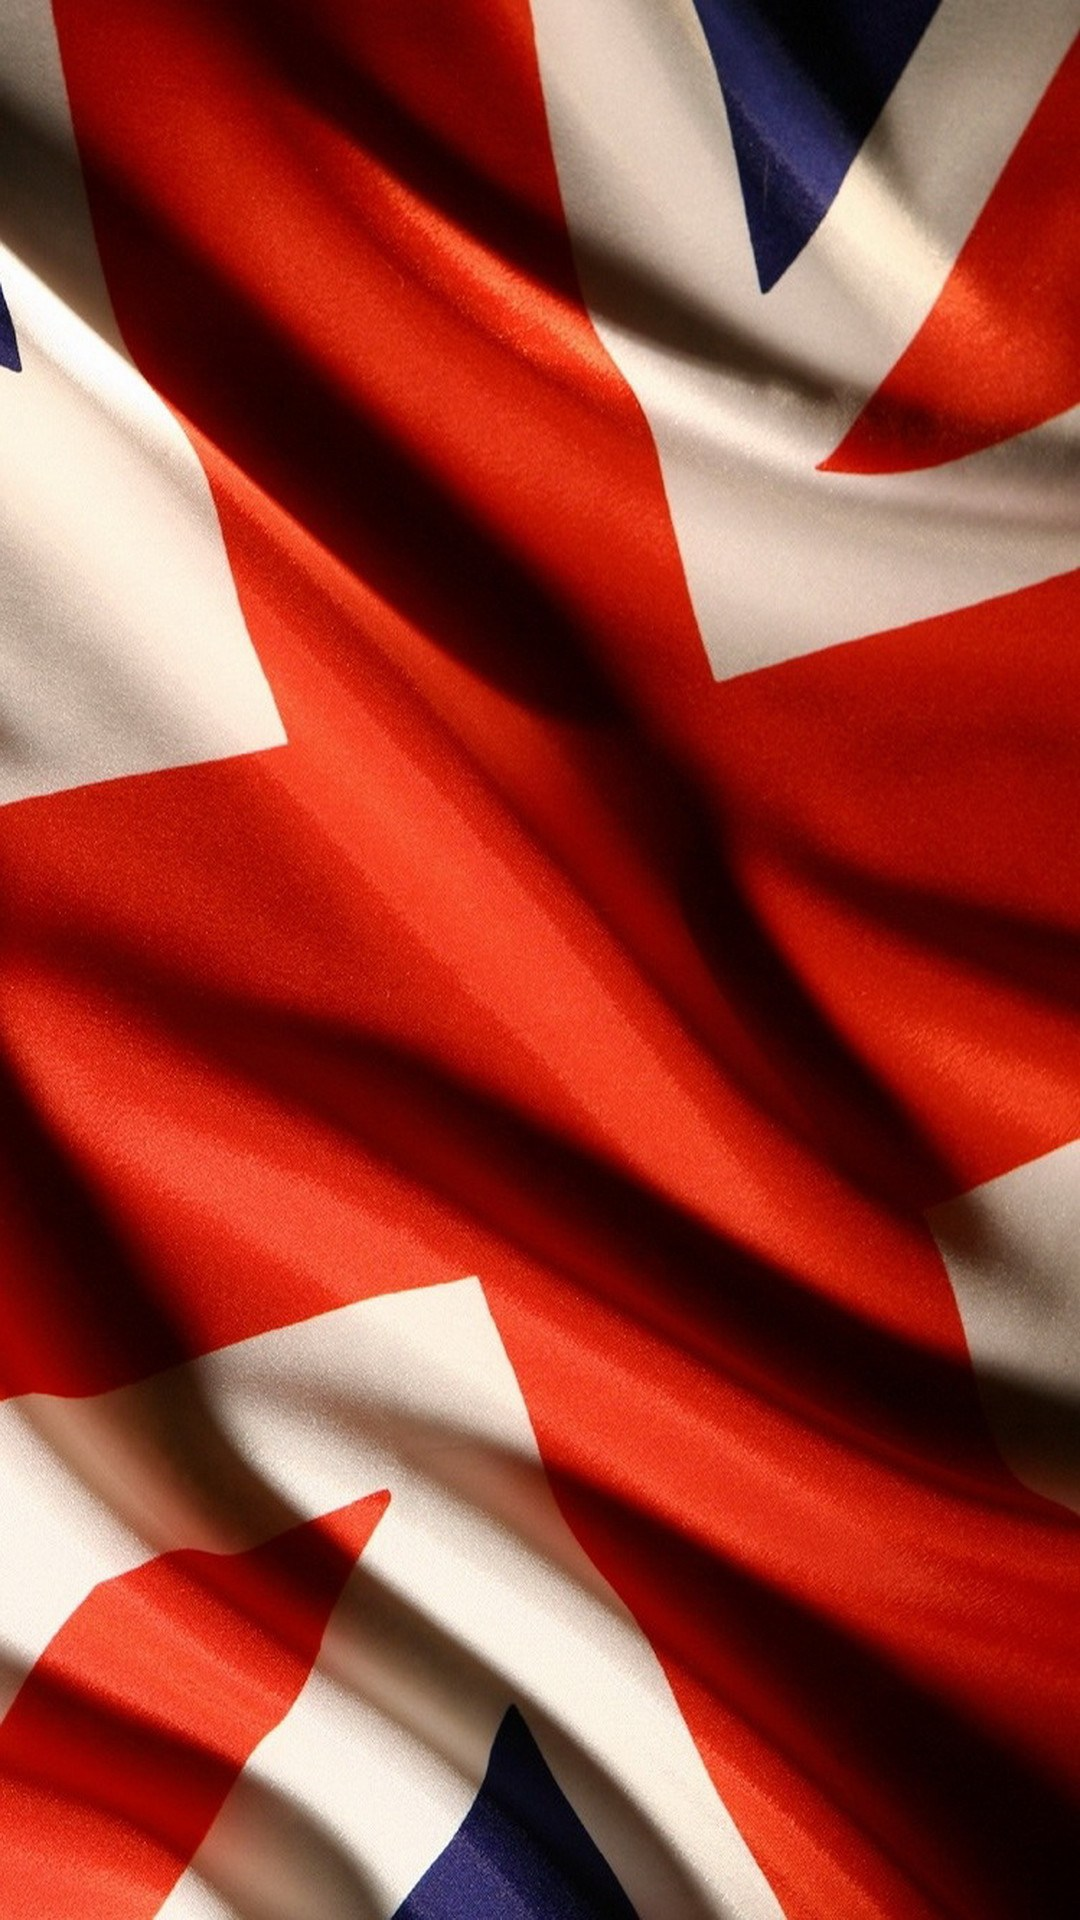 Download Uk Flag Wallpaper 54 Free Wallpaper For Your Union Jack Iphone X 743203 Hd Wallpaper Backgrounds Download